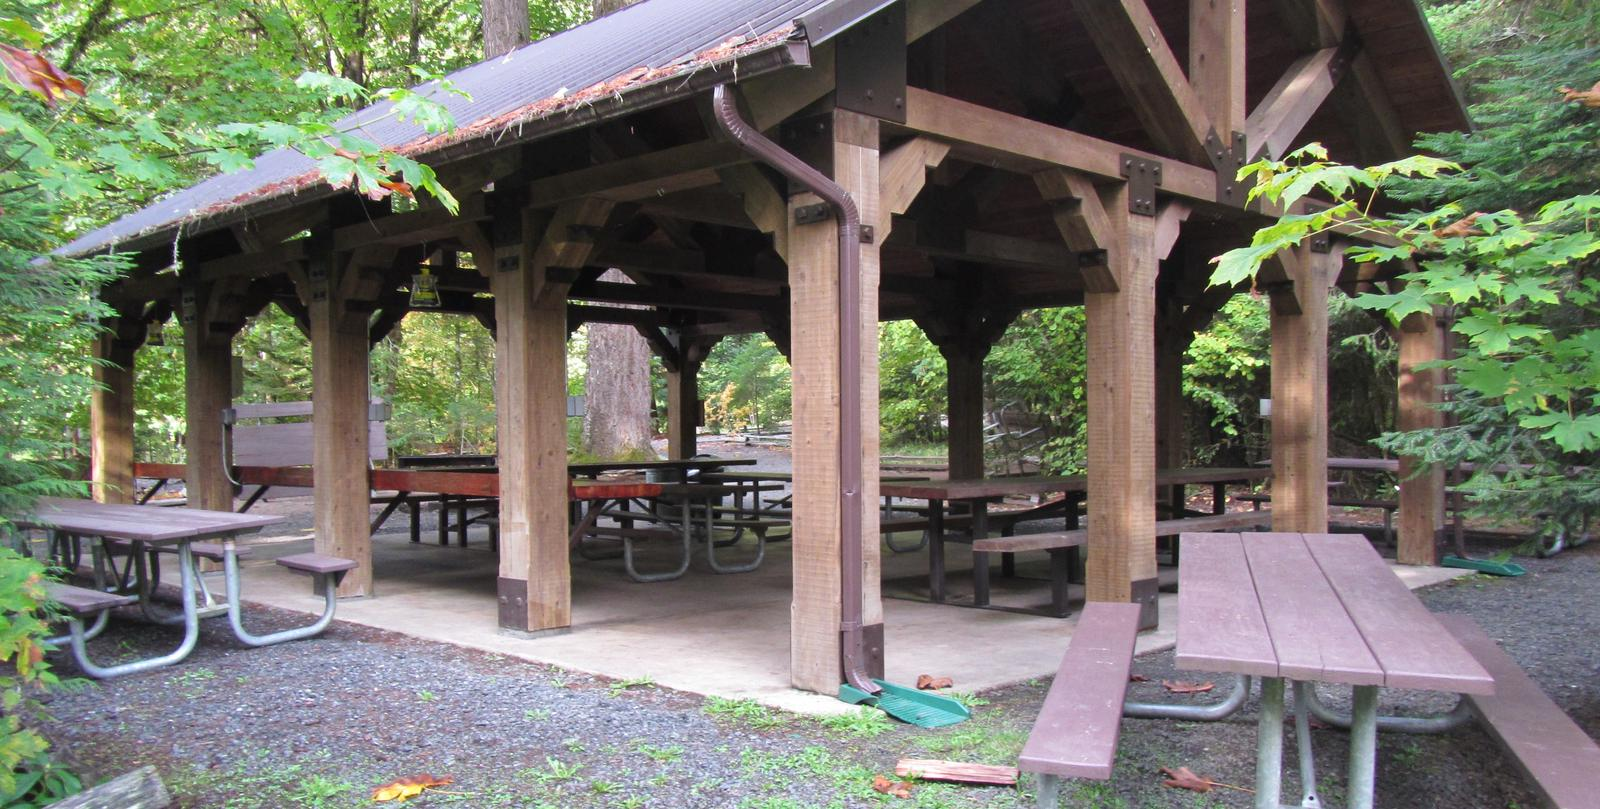 Large pavilion with picnic tables